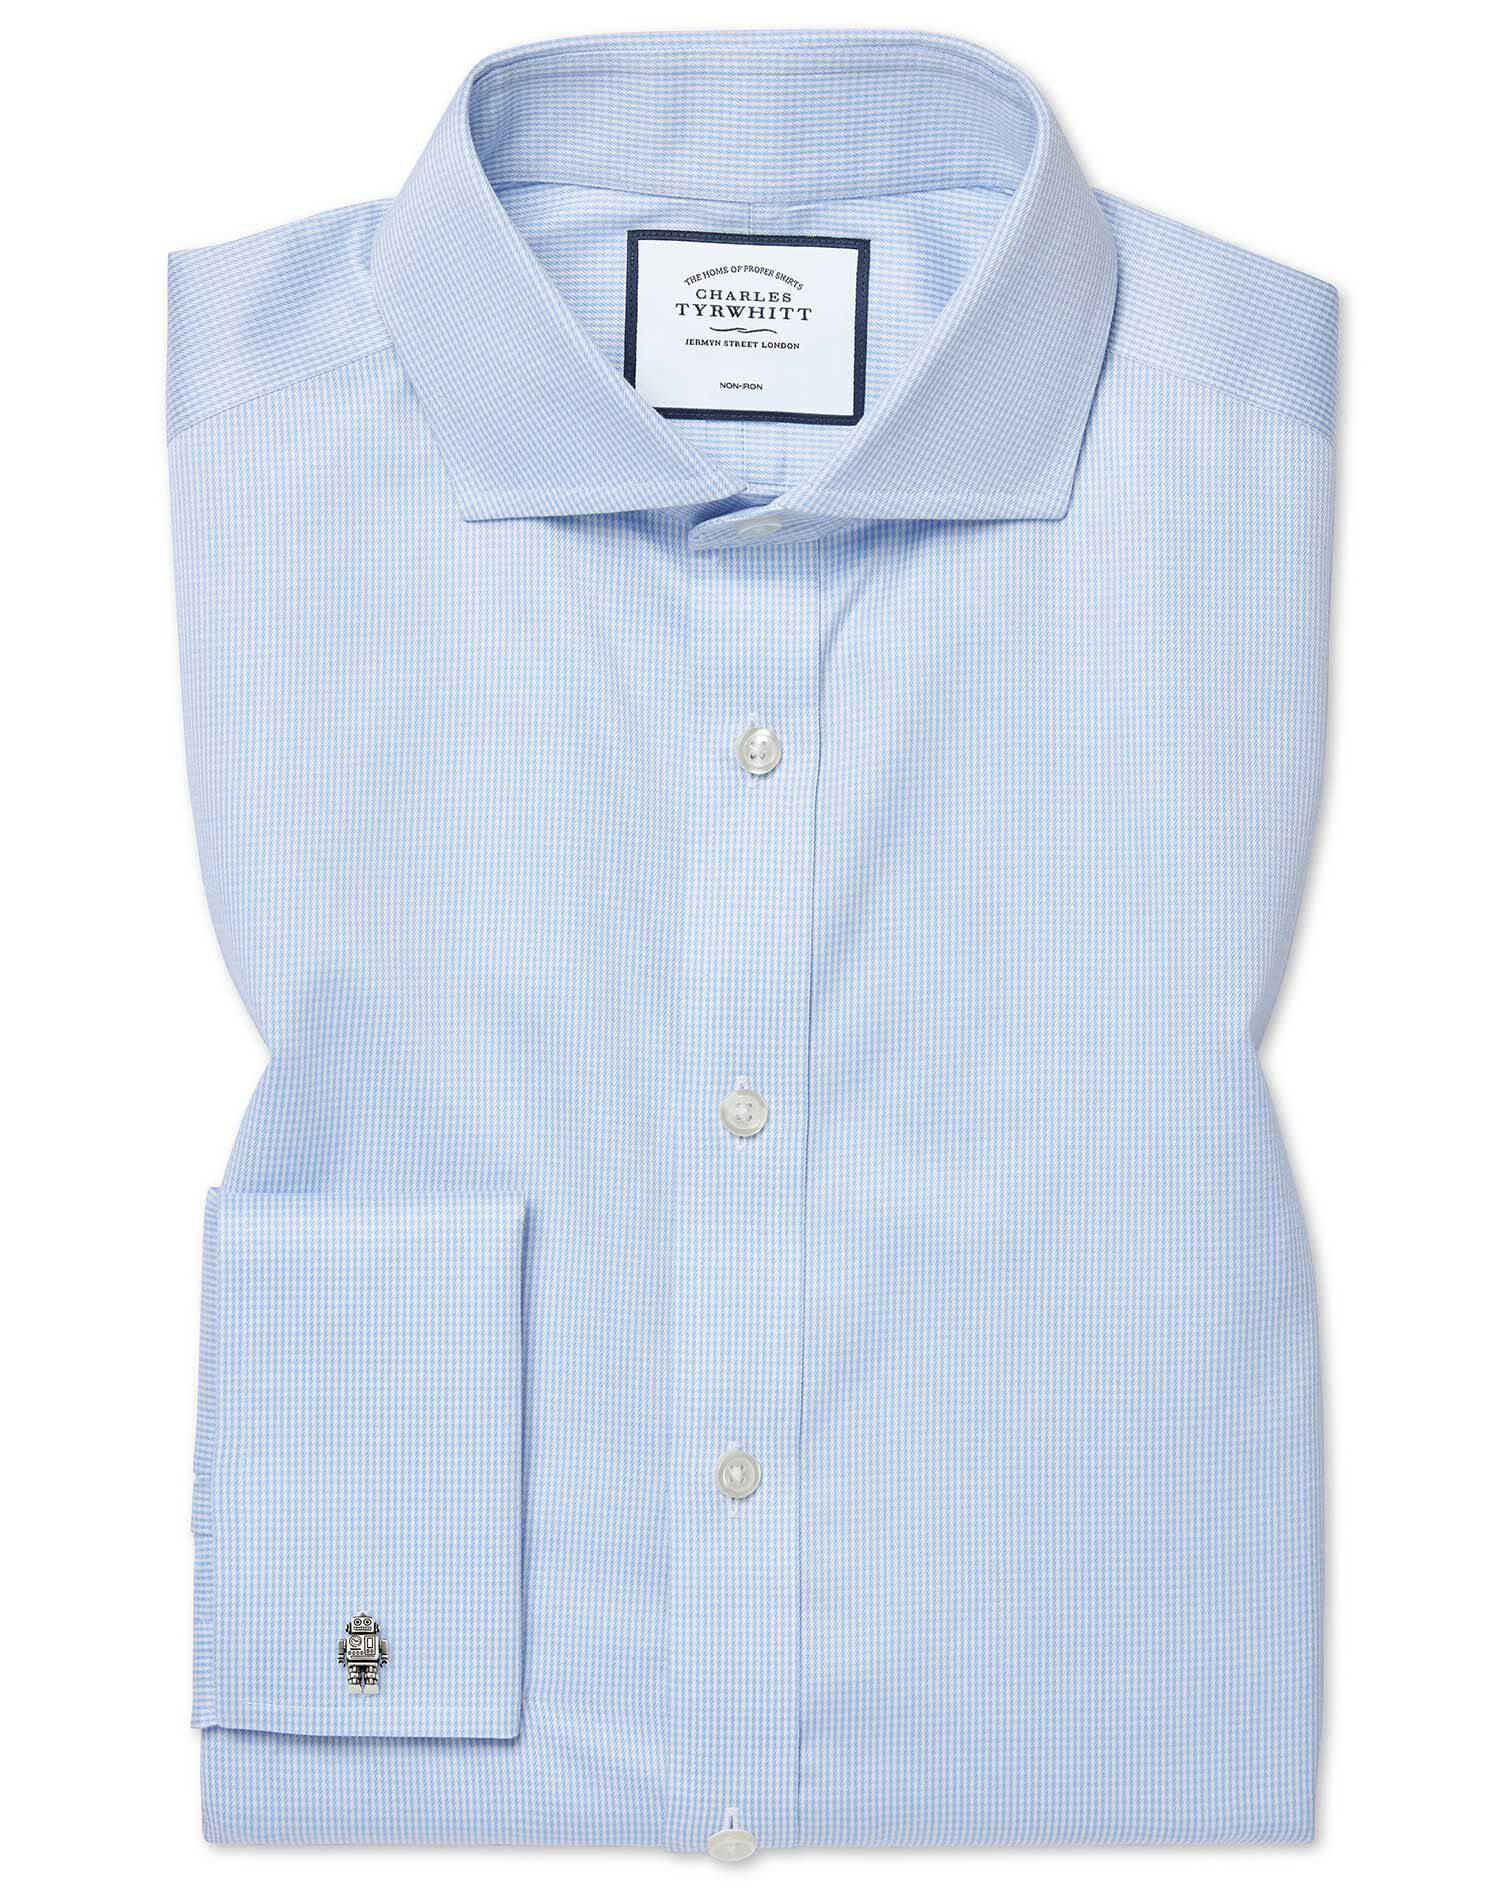 Extra Slim Fit Cutaway Collar Non-Iron Puppytooth Sky Blue Cotton Formal Shirt Double Cuff Size 16.5